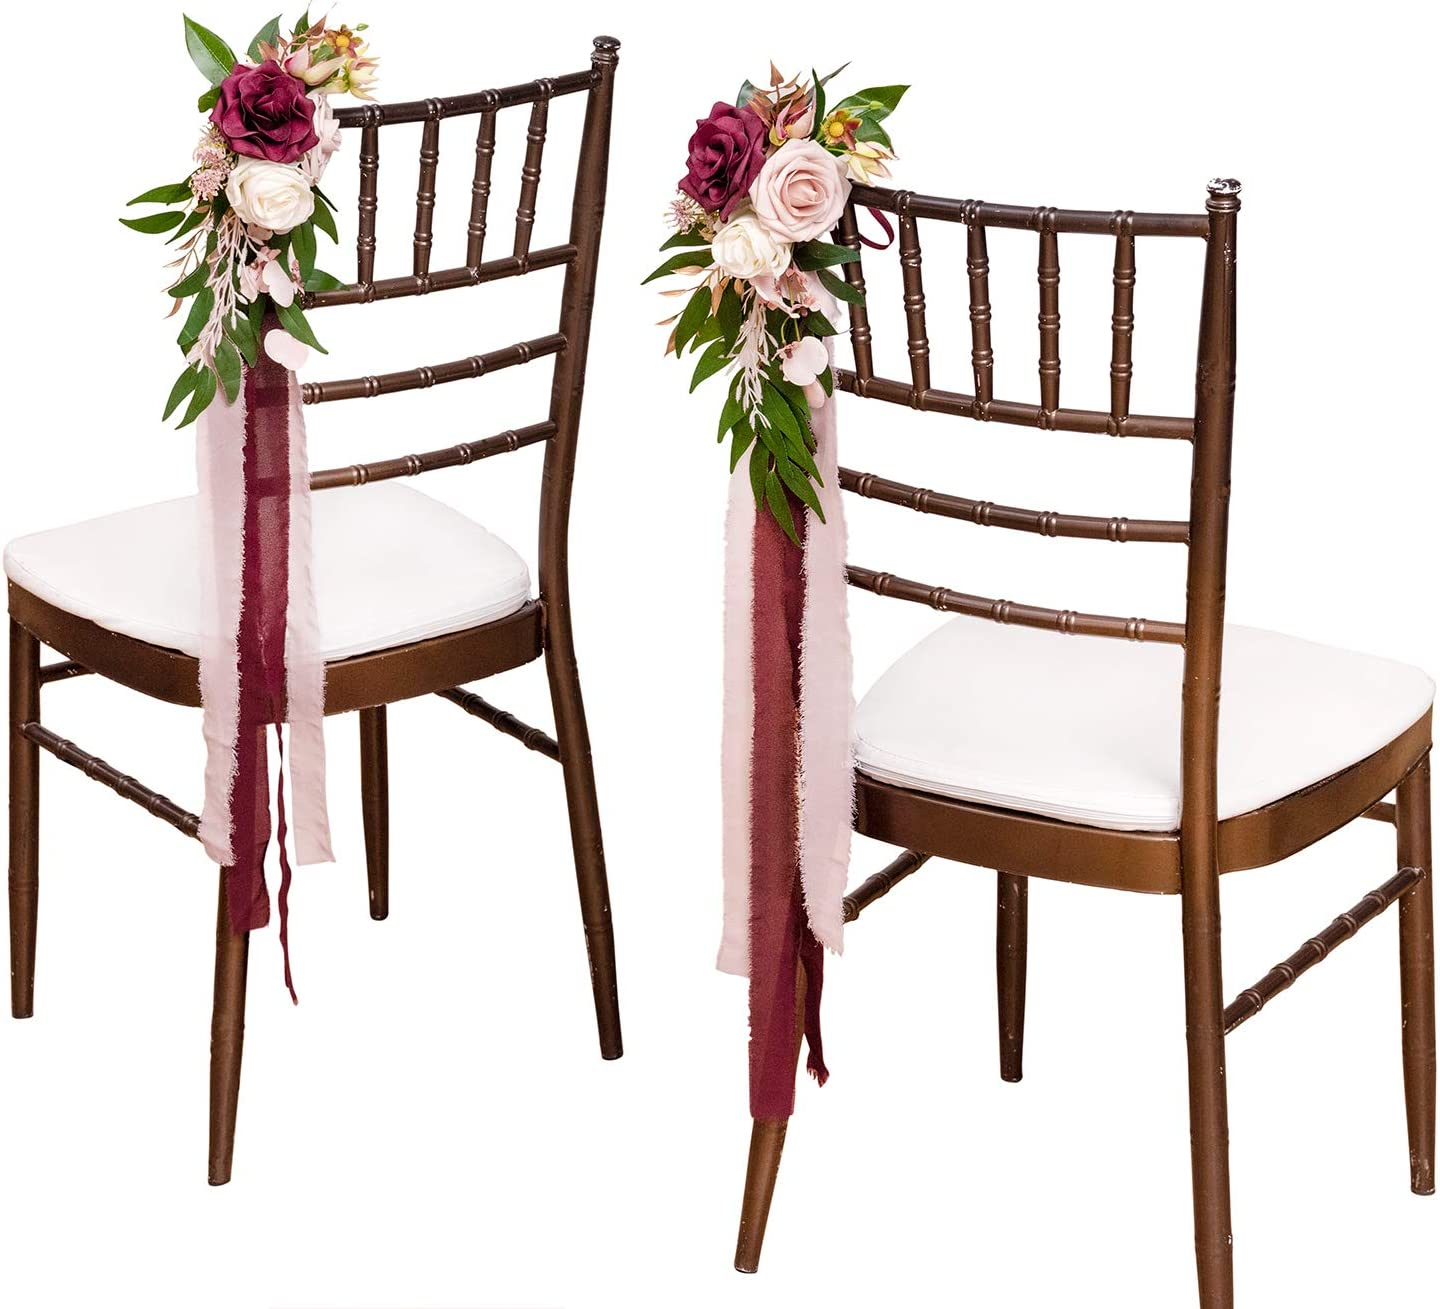 Ling's moment Rustic Wedding Aisle Decor Chair Decorations Artificial Flower Pew Decorations for Wedding Ceremony Set of 8, Dusty Rose & Marsala